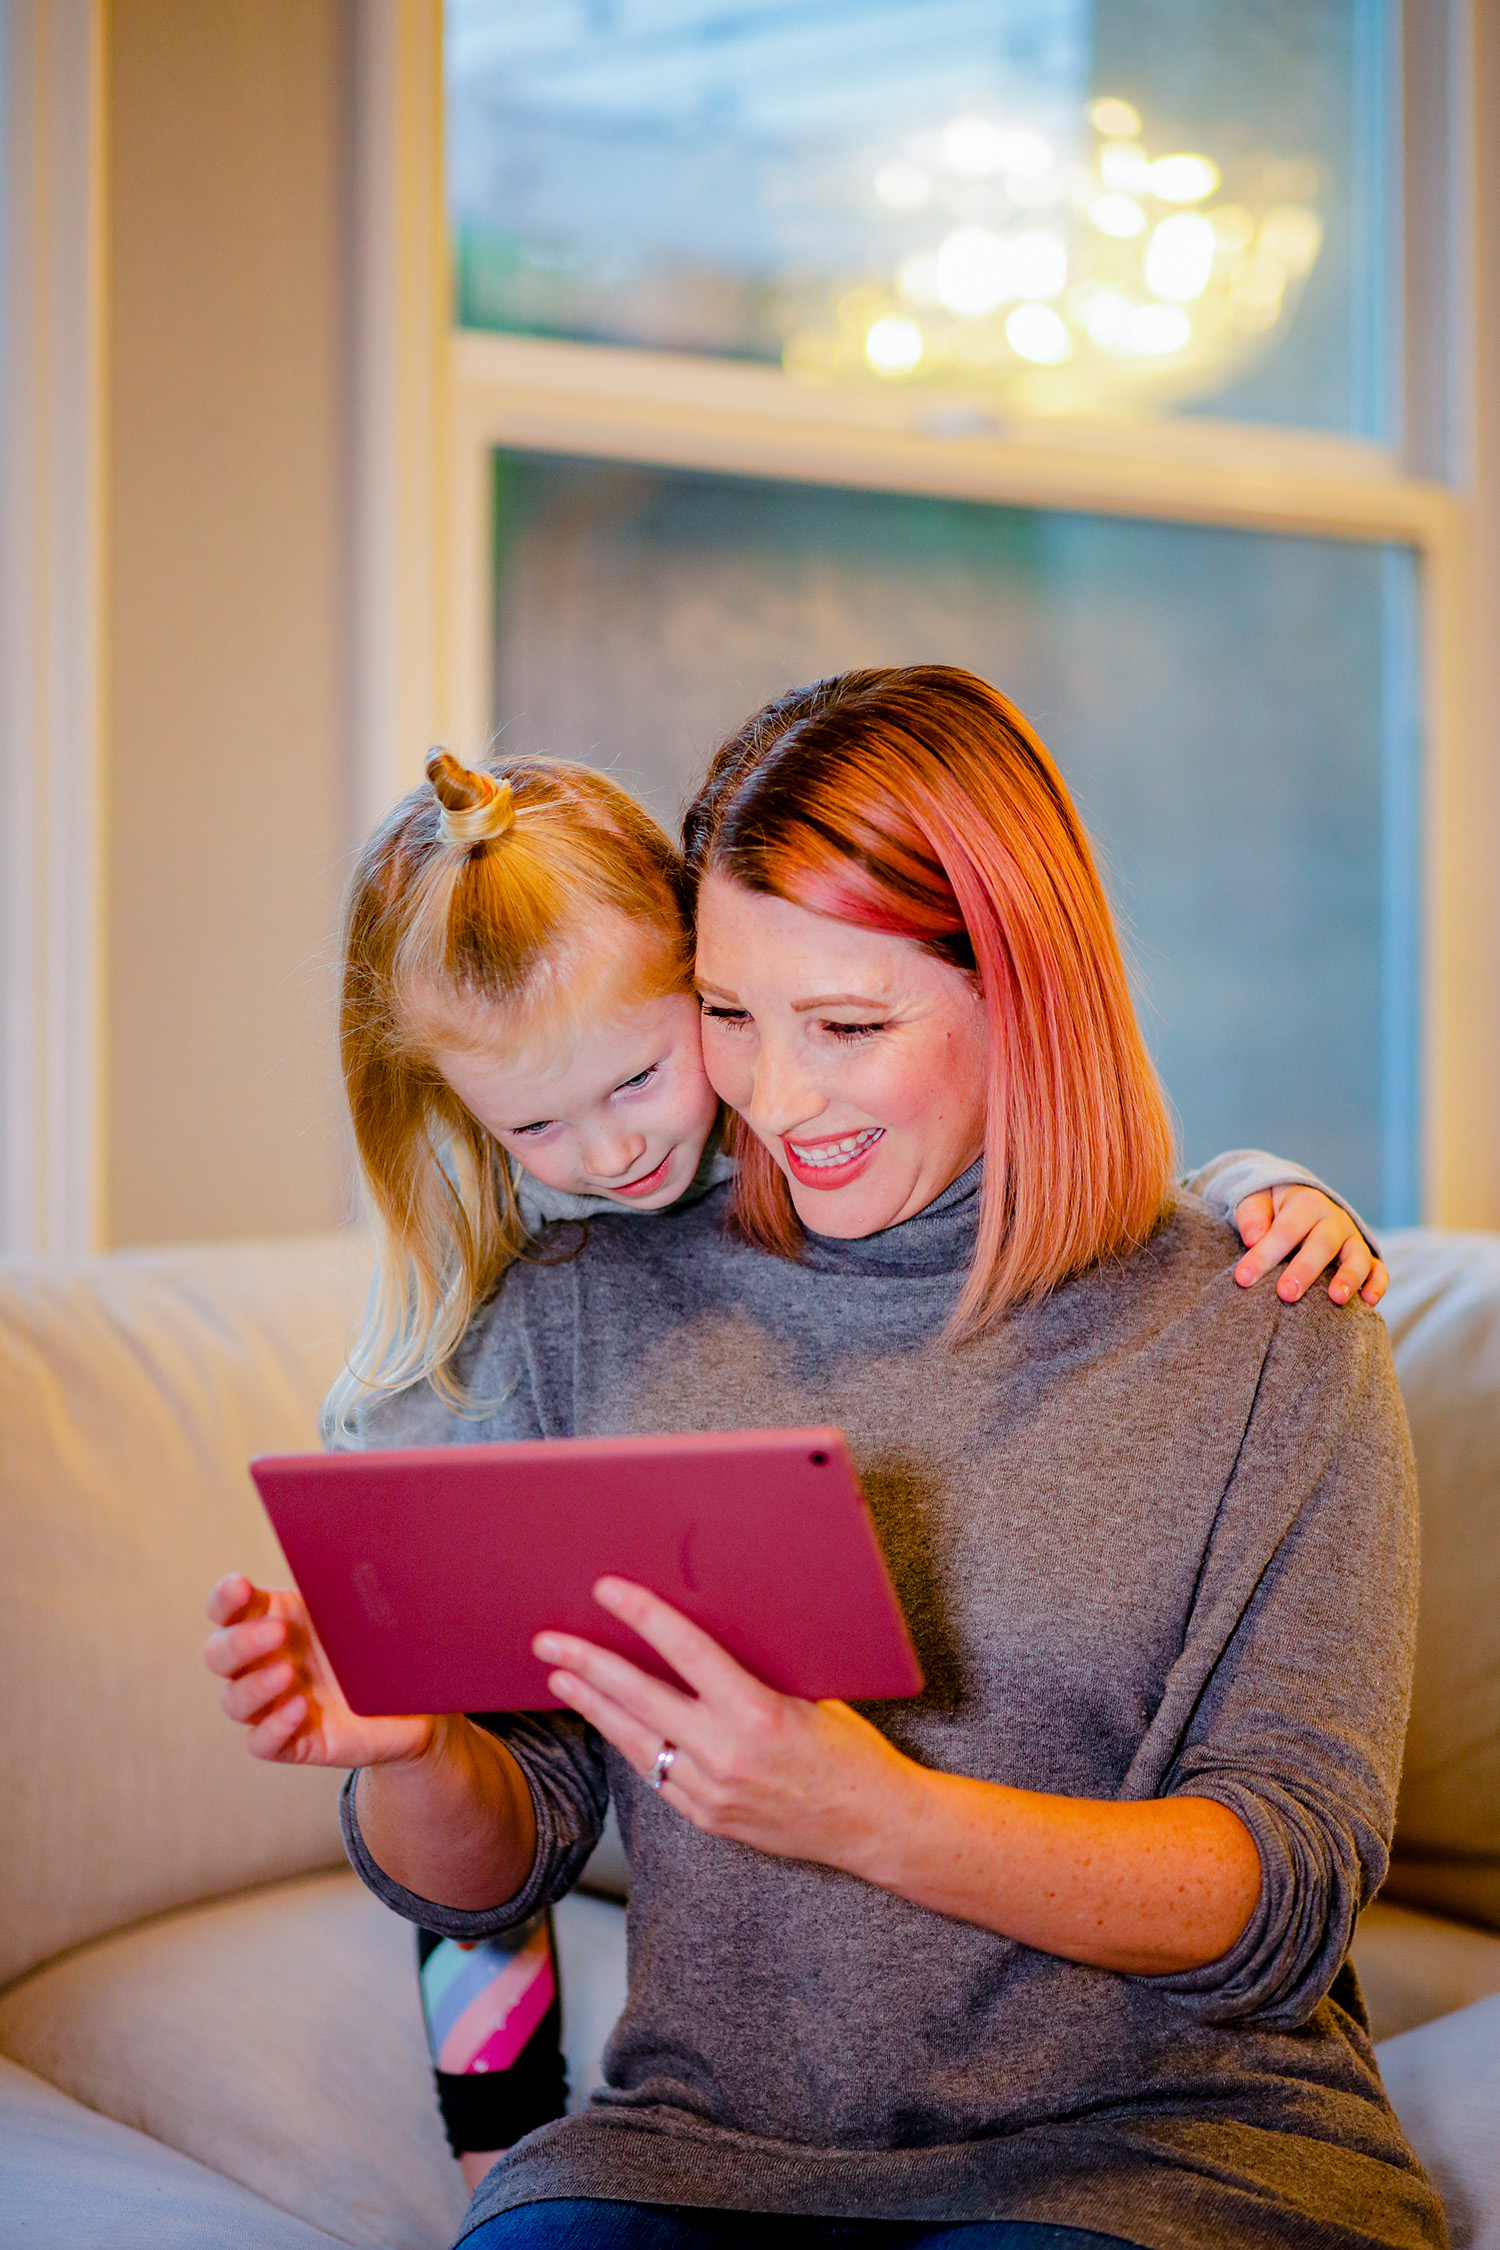 Healthy Screen Time: These tips from a teacher and mom will help you so much during this busy season!